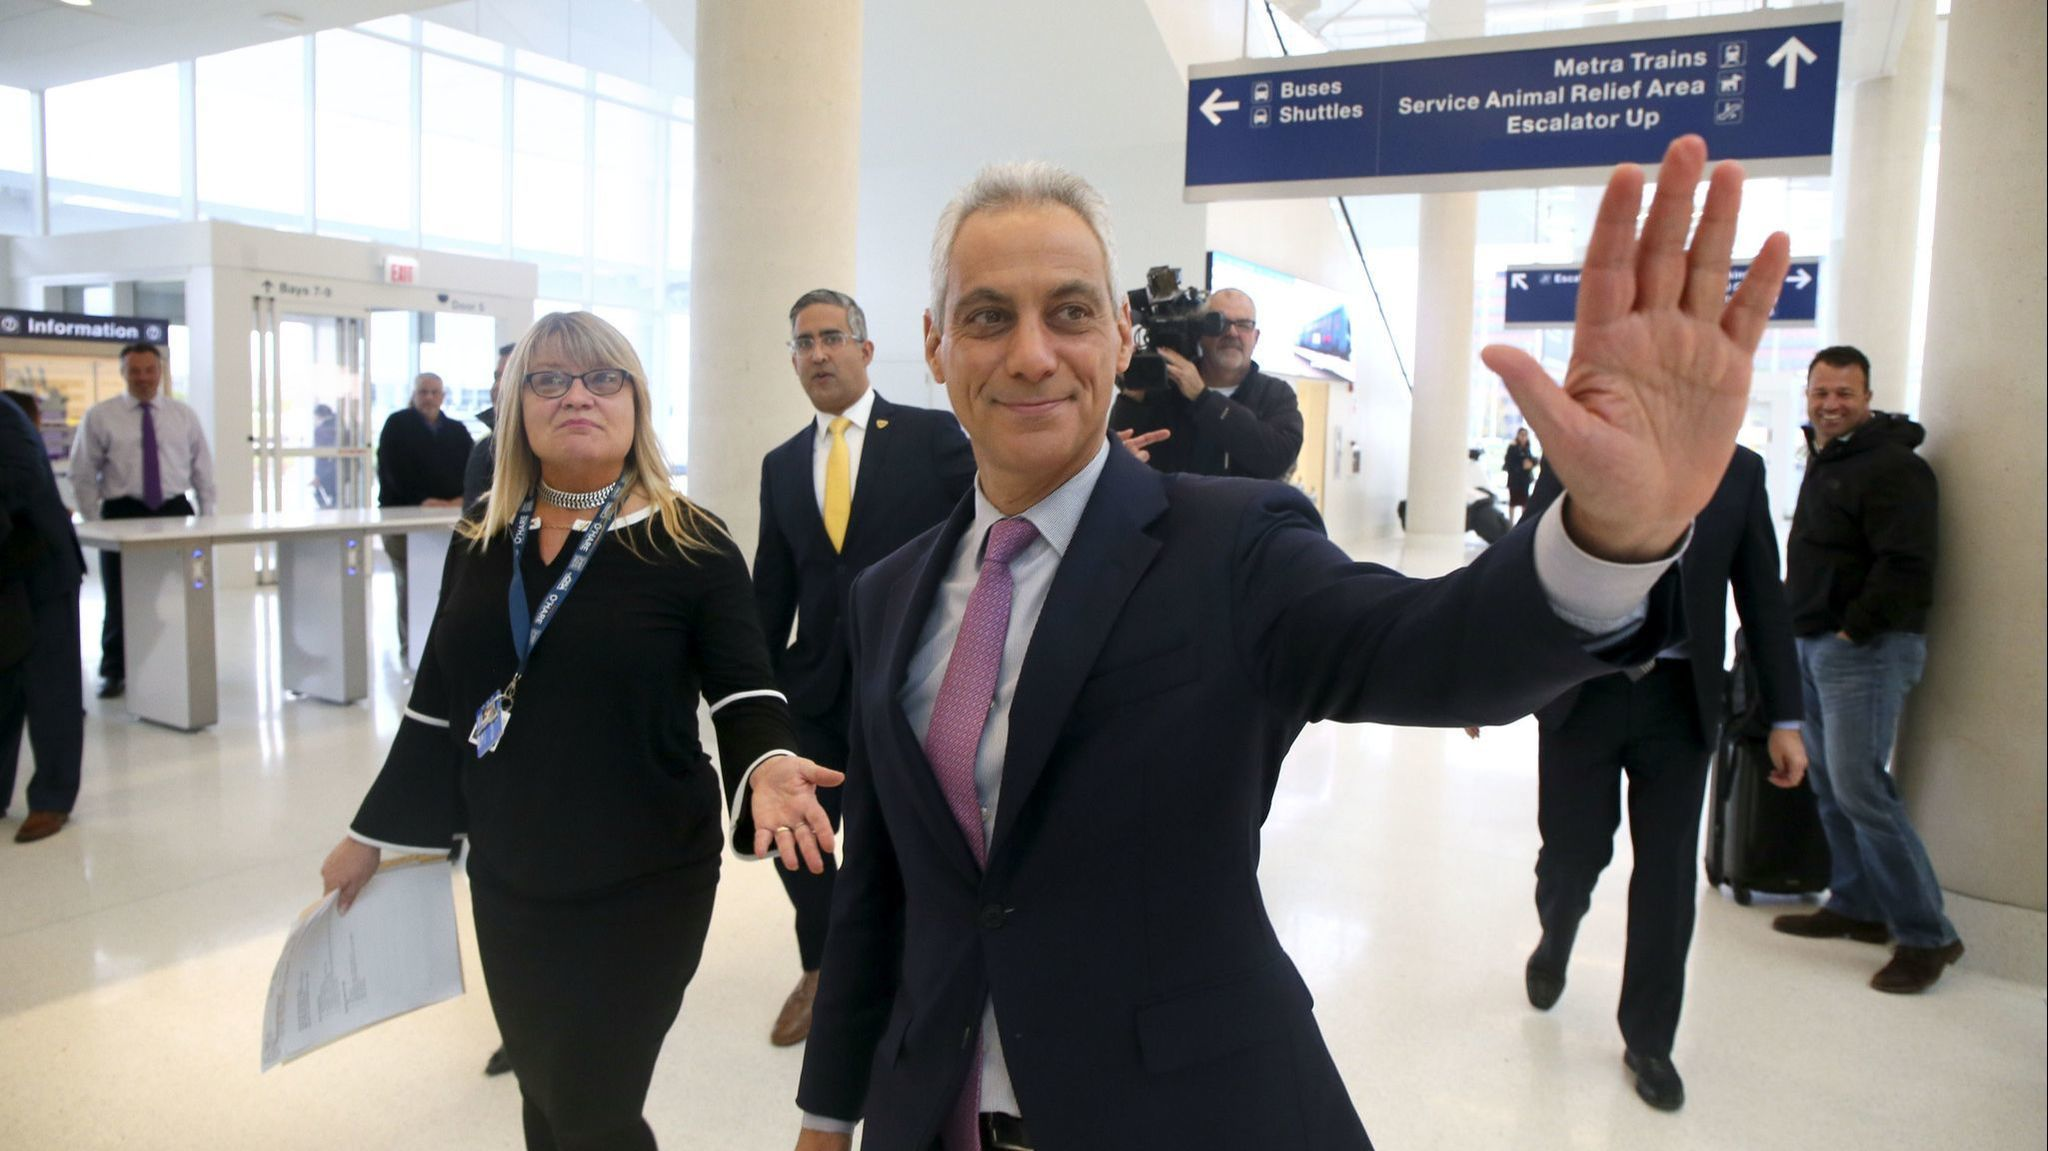 Mayor Rahm Emanuel says 'don't worry about my future' after report he's been in talks to become a cable news pundit